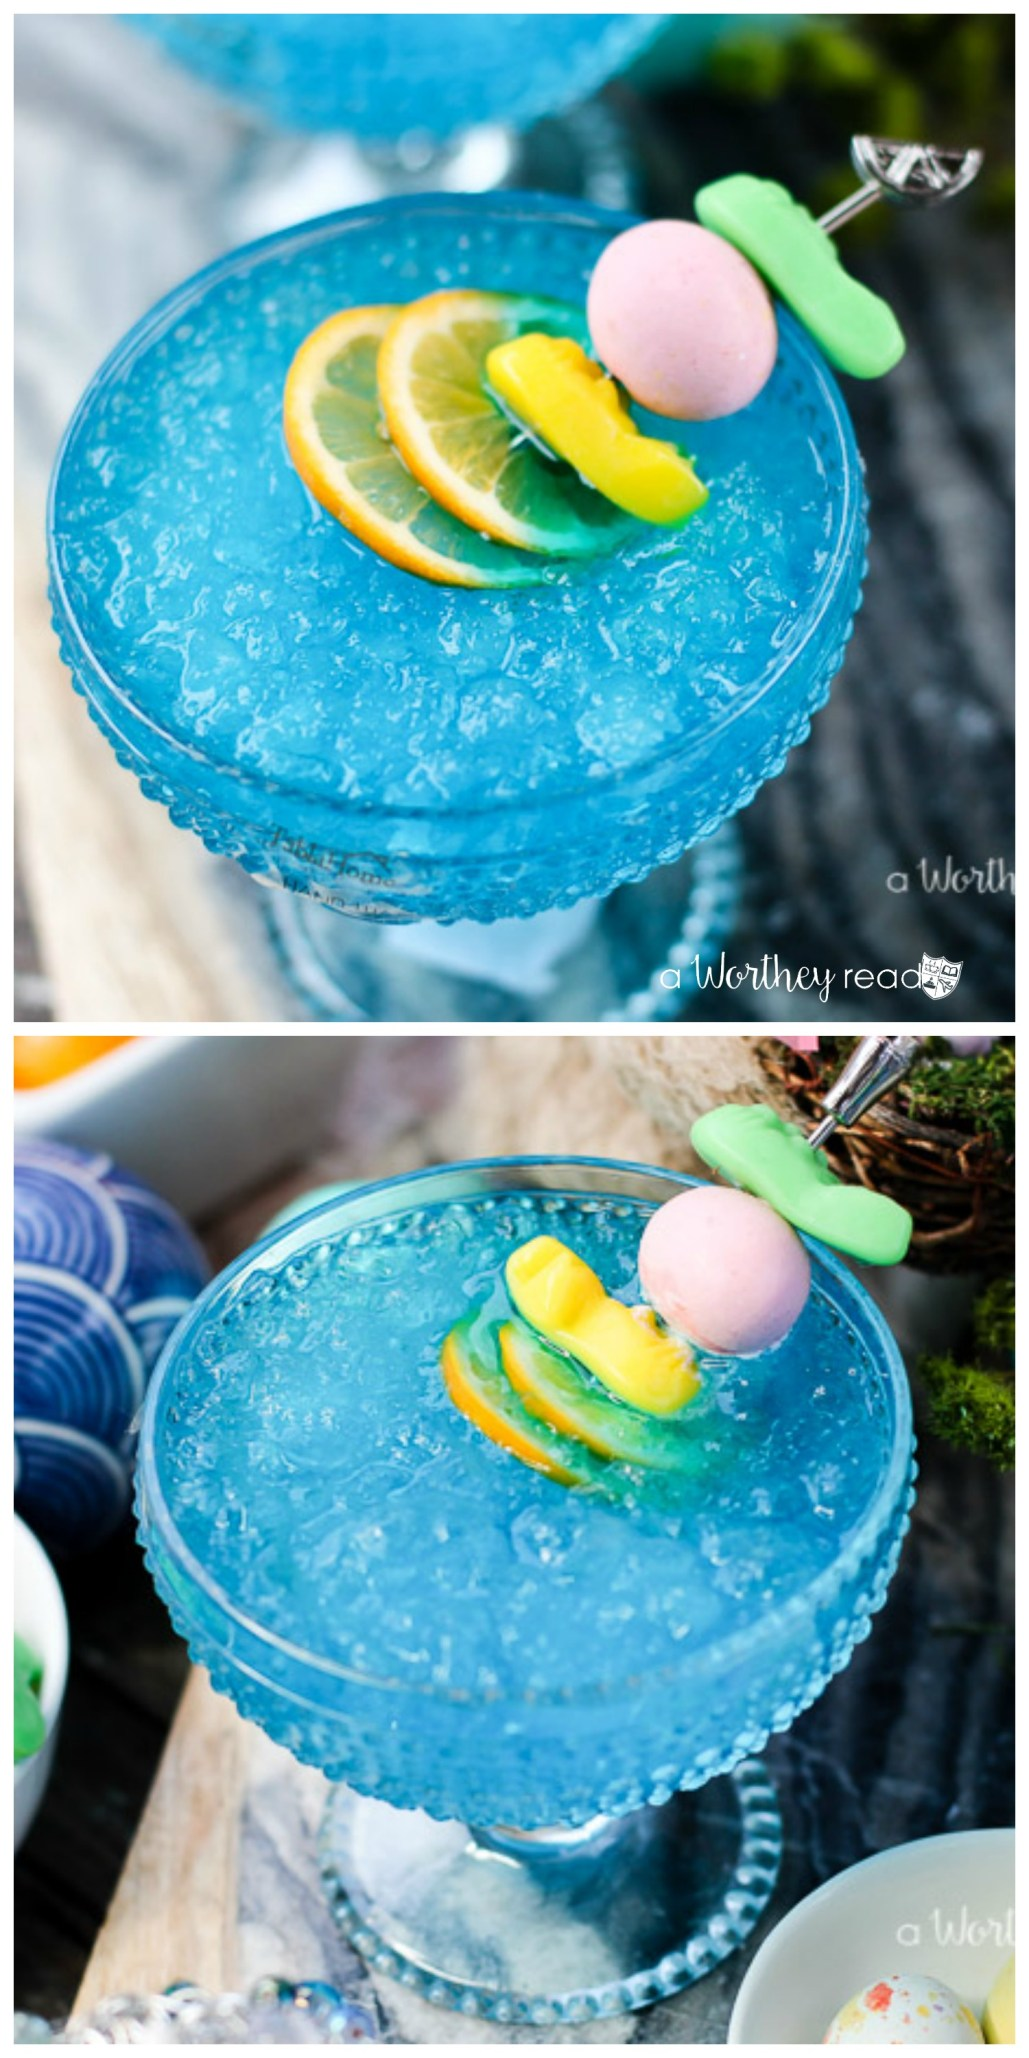 It's Easter time! Our deliciously blue Easter Italian Ice Cocktail is what you will want on your Easter table. It's an Italian ice is shaved ice with a bit of fruit flavored syrup, plus Grey Goose Vodka and Miraval Côtes de Provence. Find the recipe on the blog!